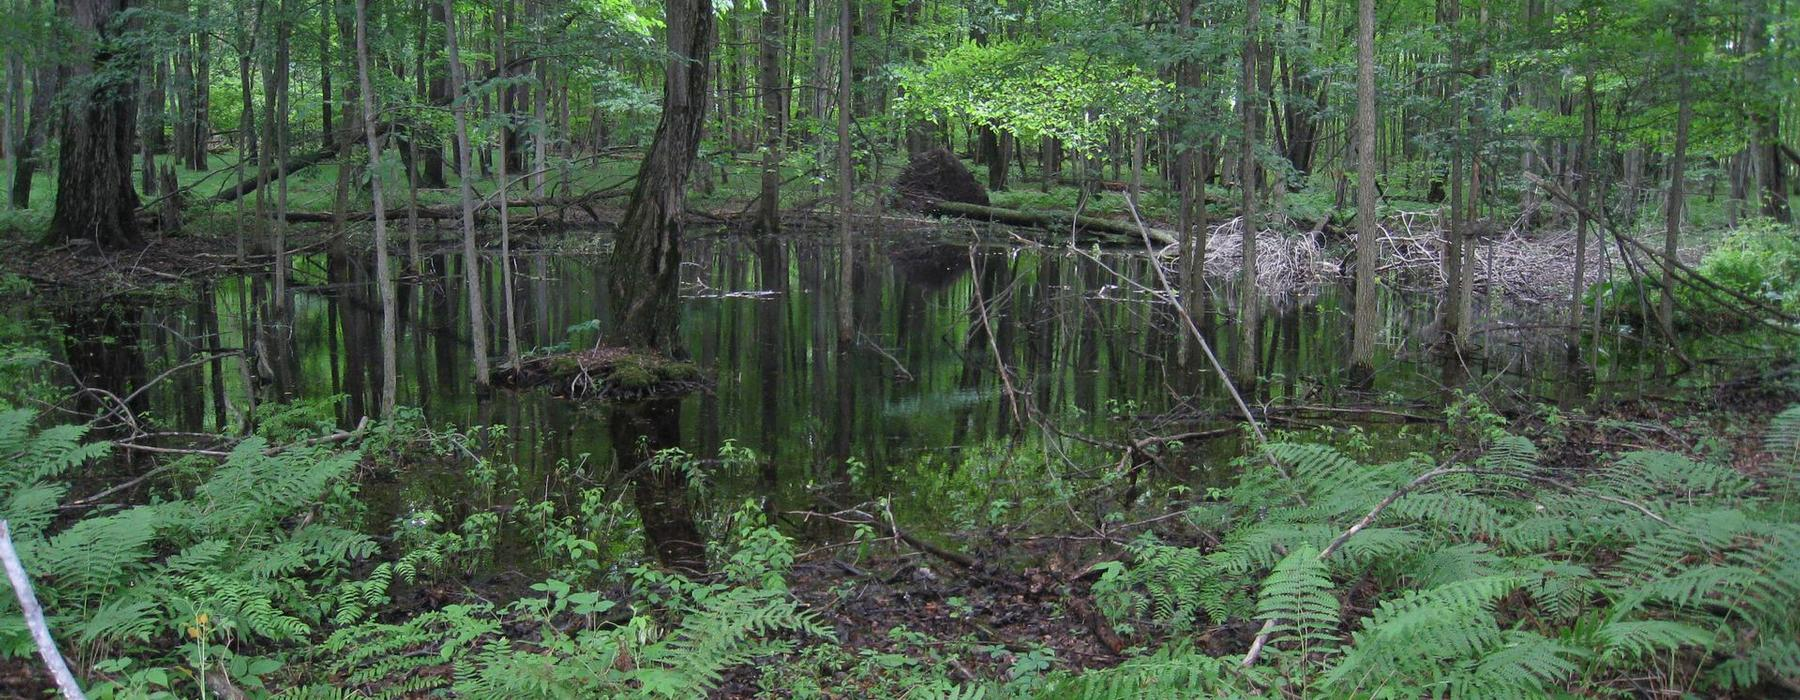 Encourage vernal pool conservation through local and state measures